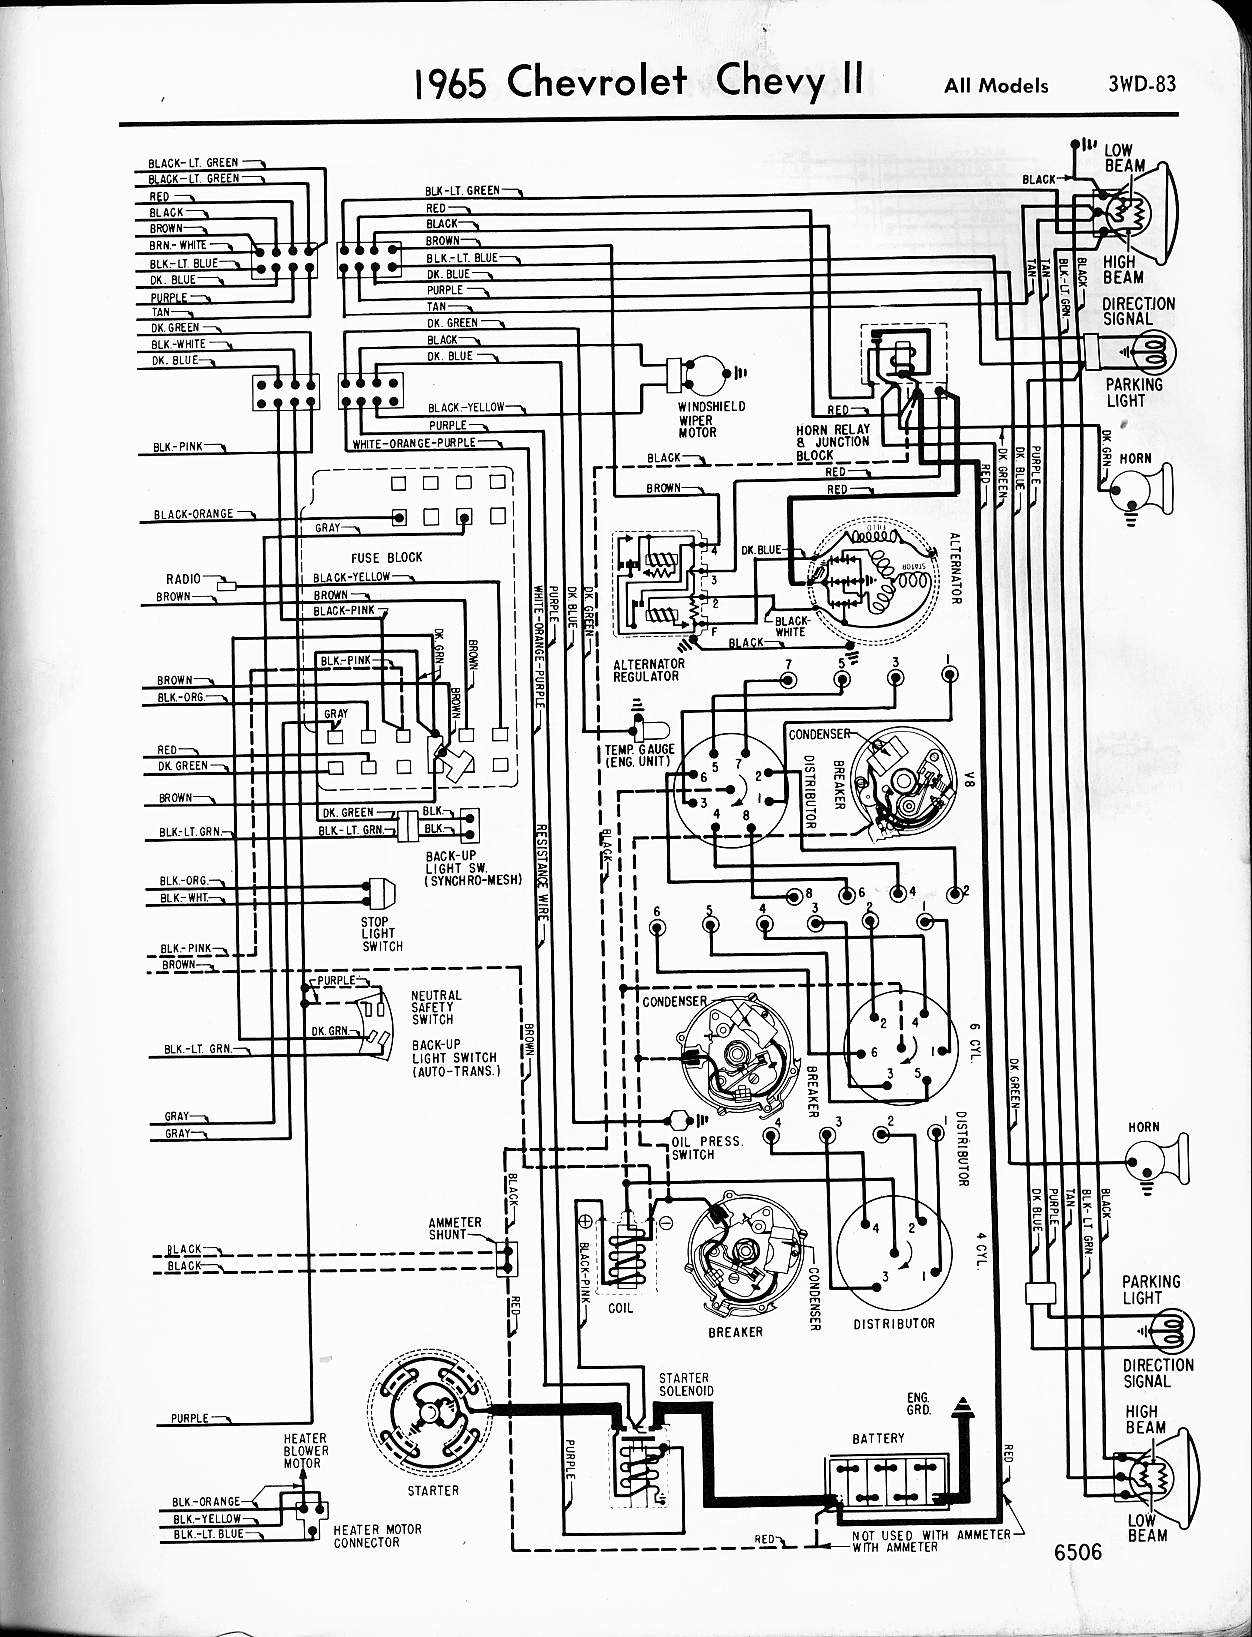 MWireChev65_3WD 083 57 65 chevy wiring diagrams 1965 chevy nova wiring diagram at webbmarketing.co